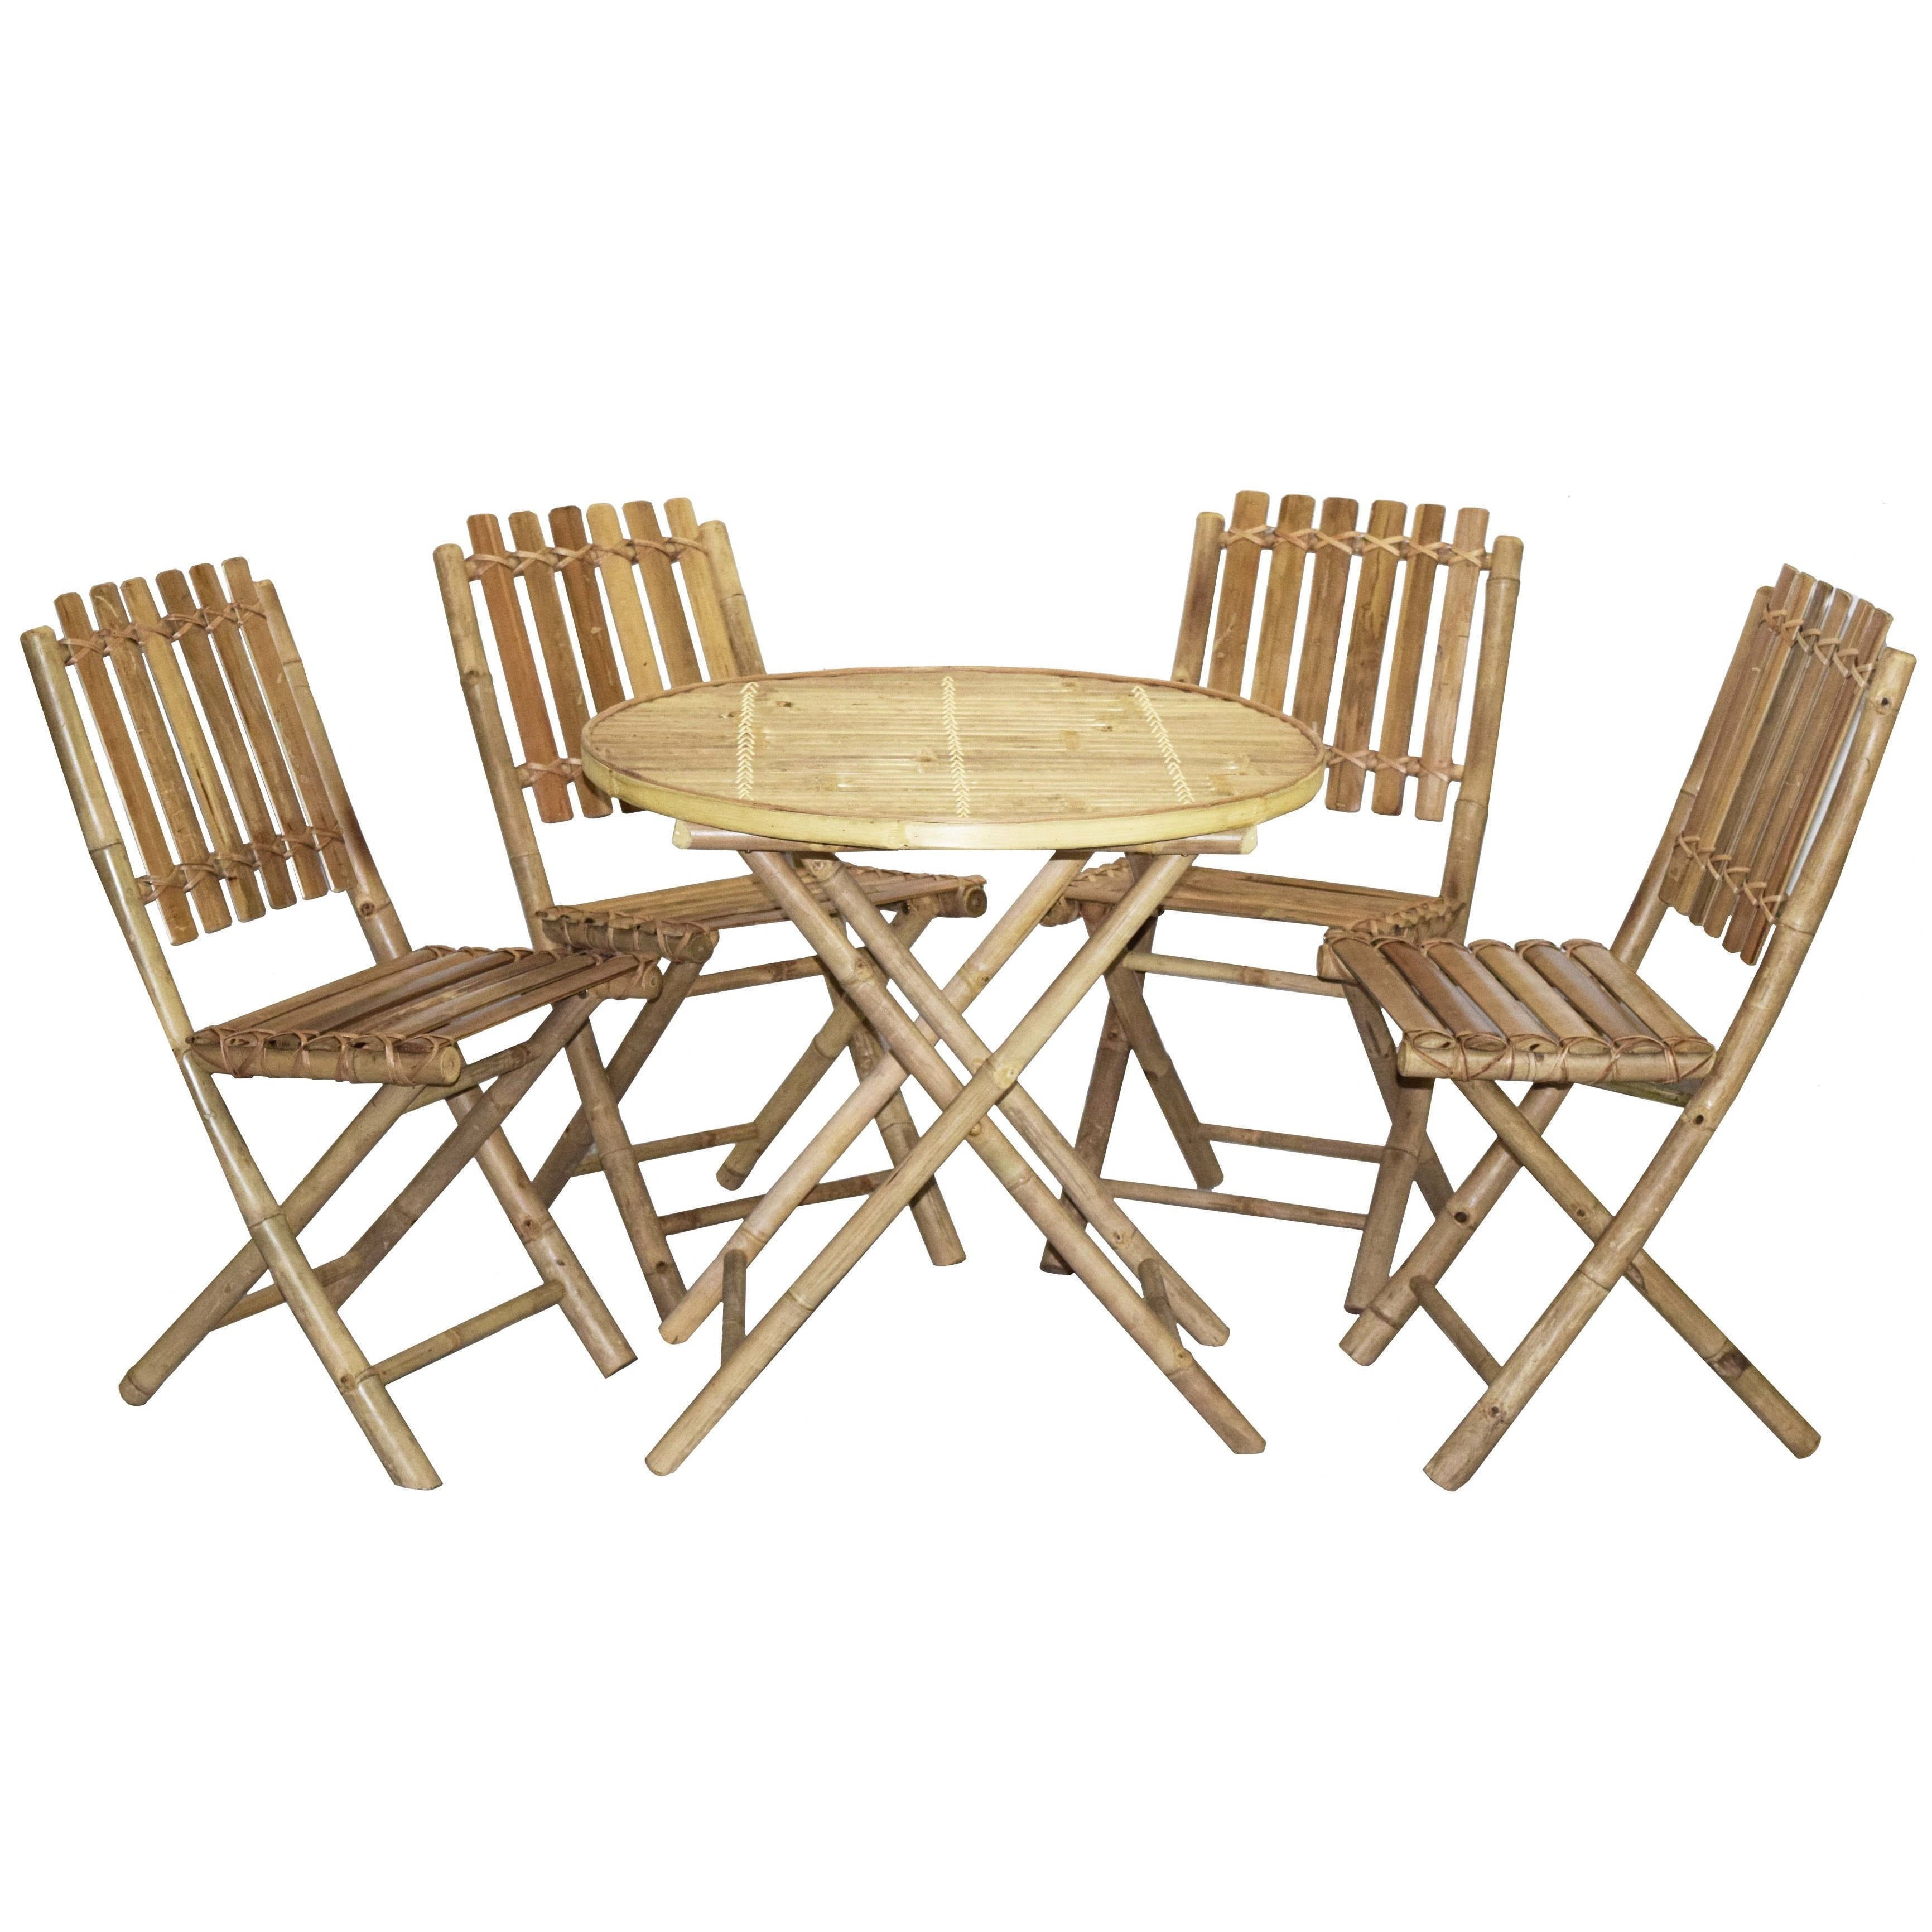 Handmade Bistro Bamboo Table and 4 Chairs Set (Vietnam) (...